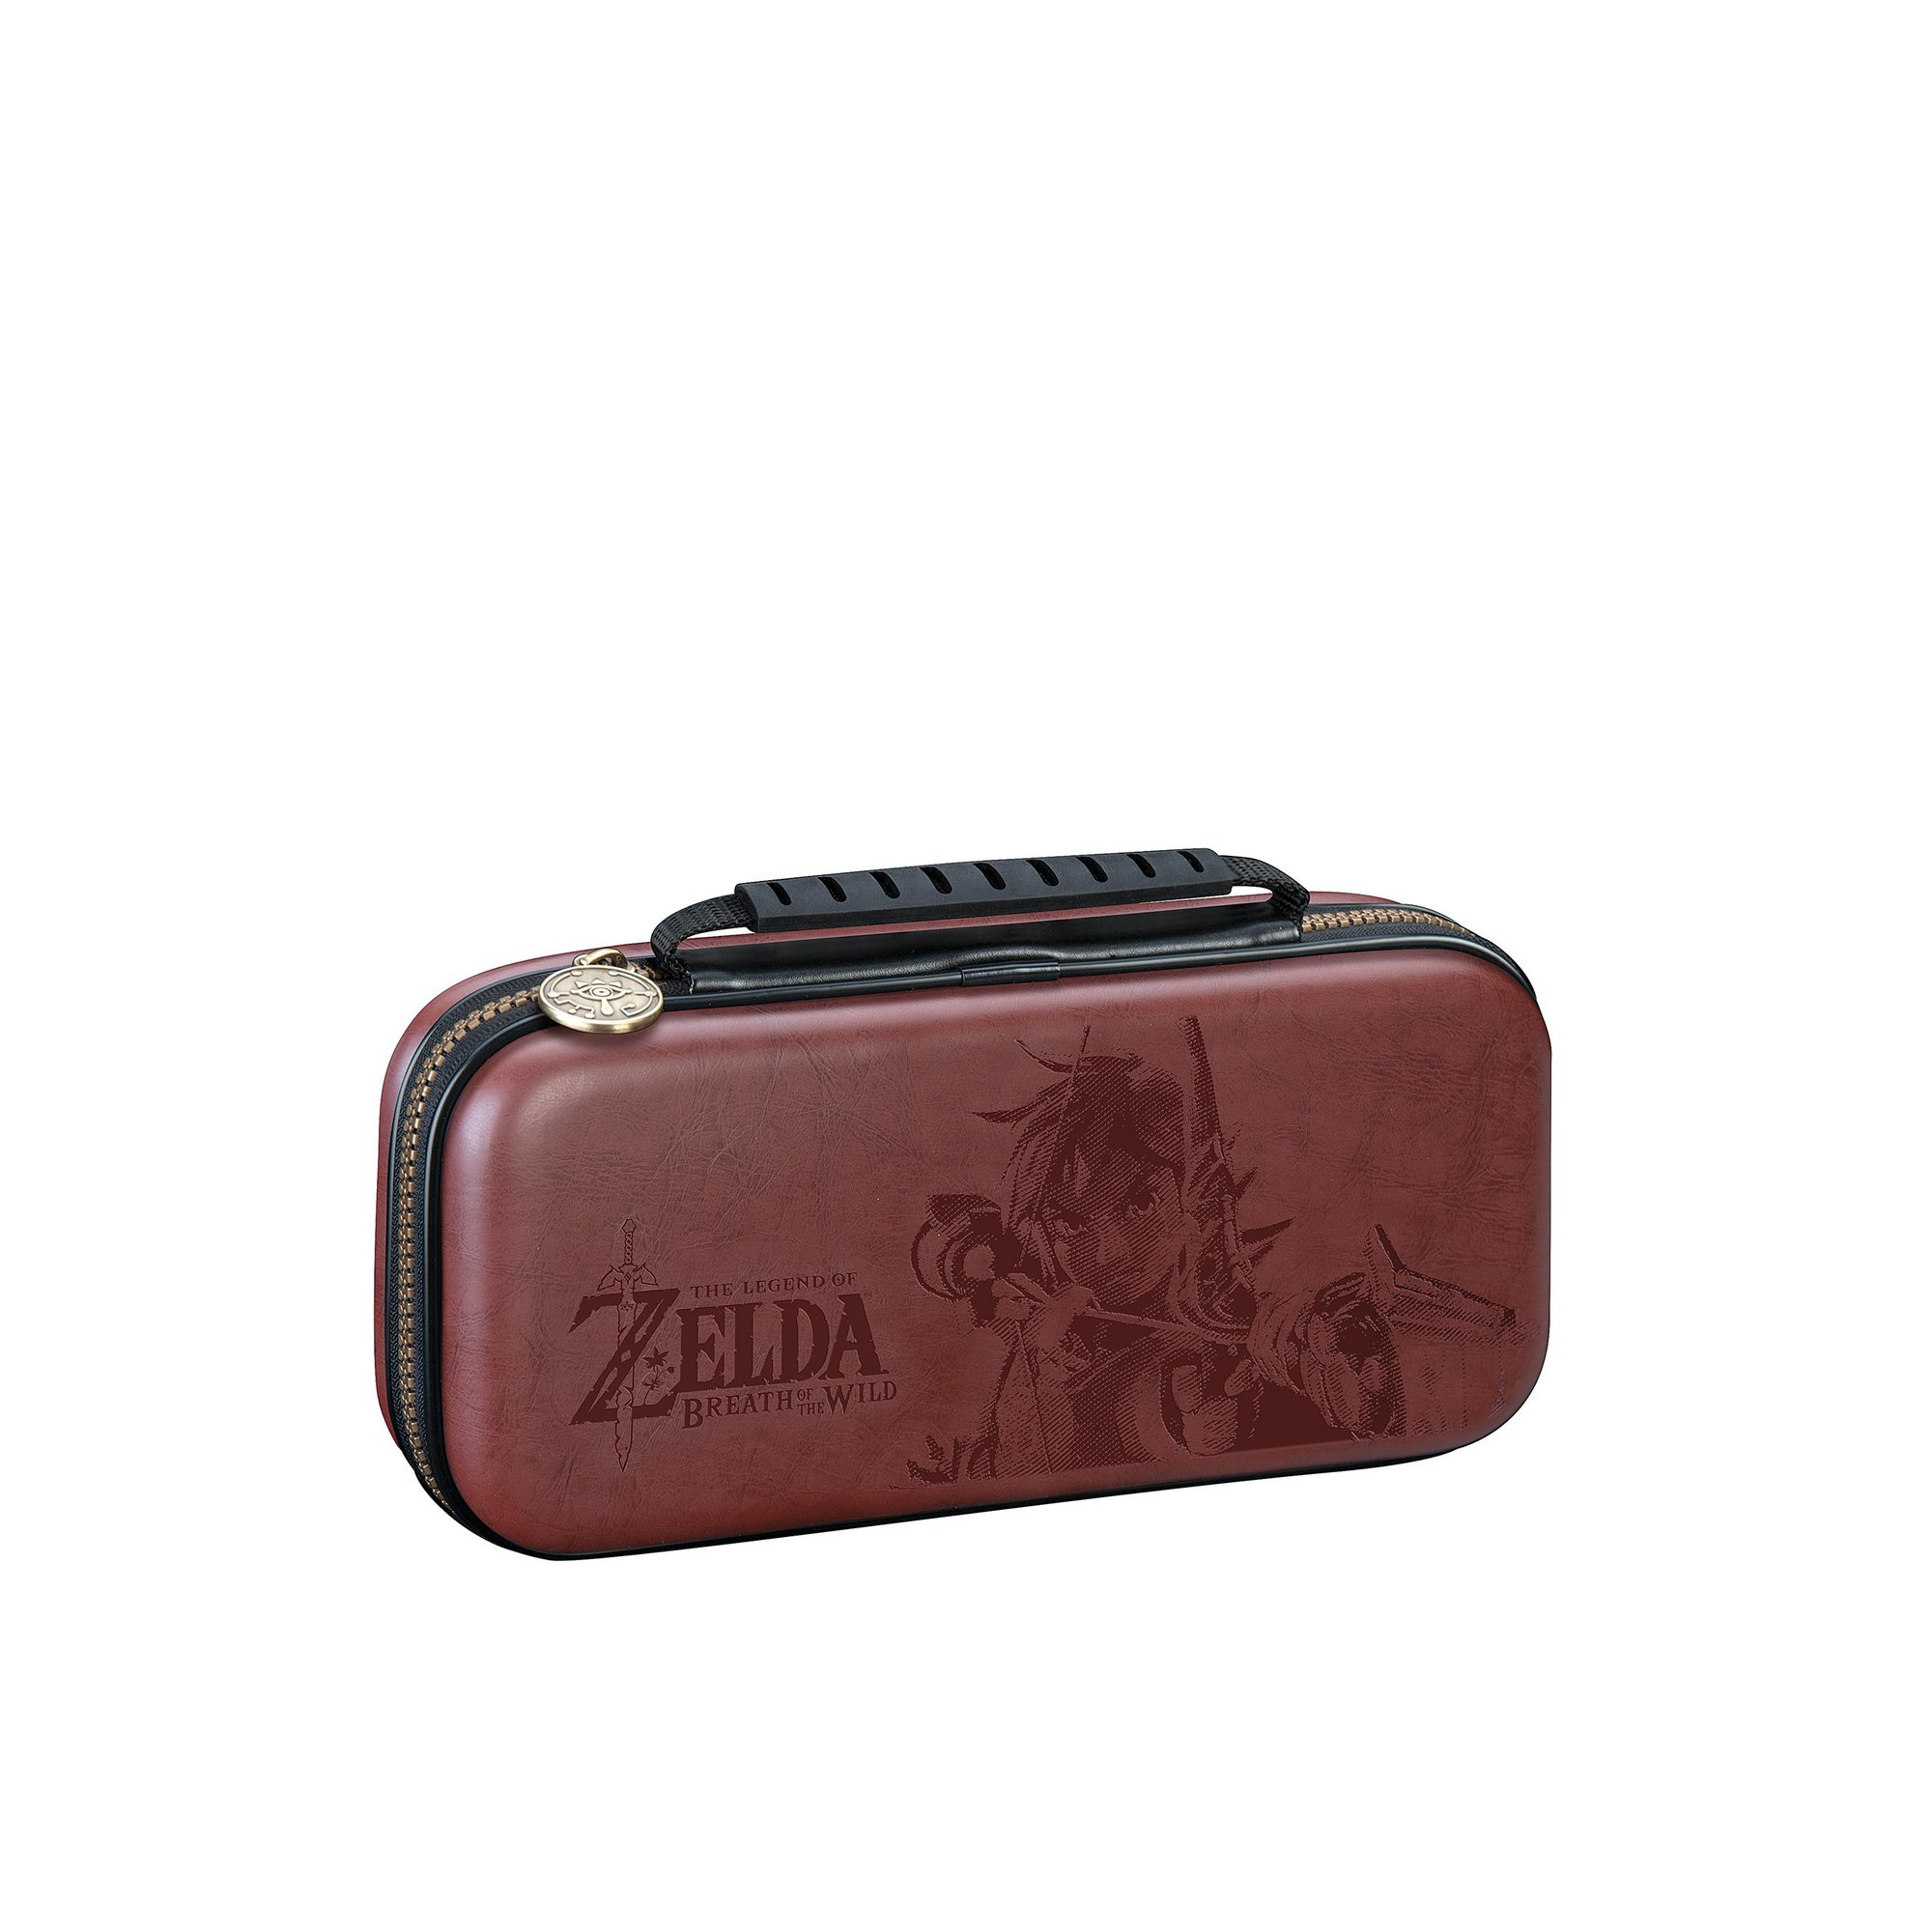 Image of Official Zelda Brown Travel Case For Nintendo Switch